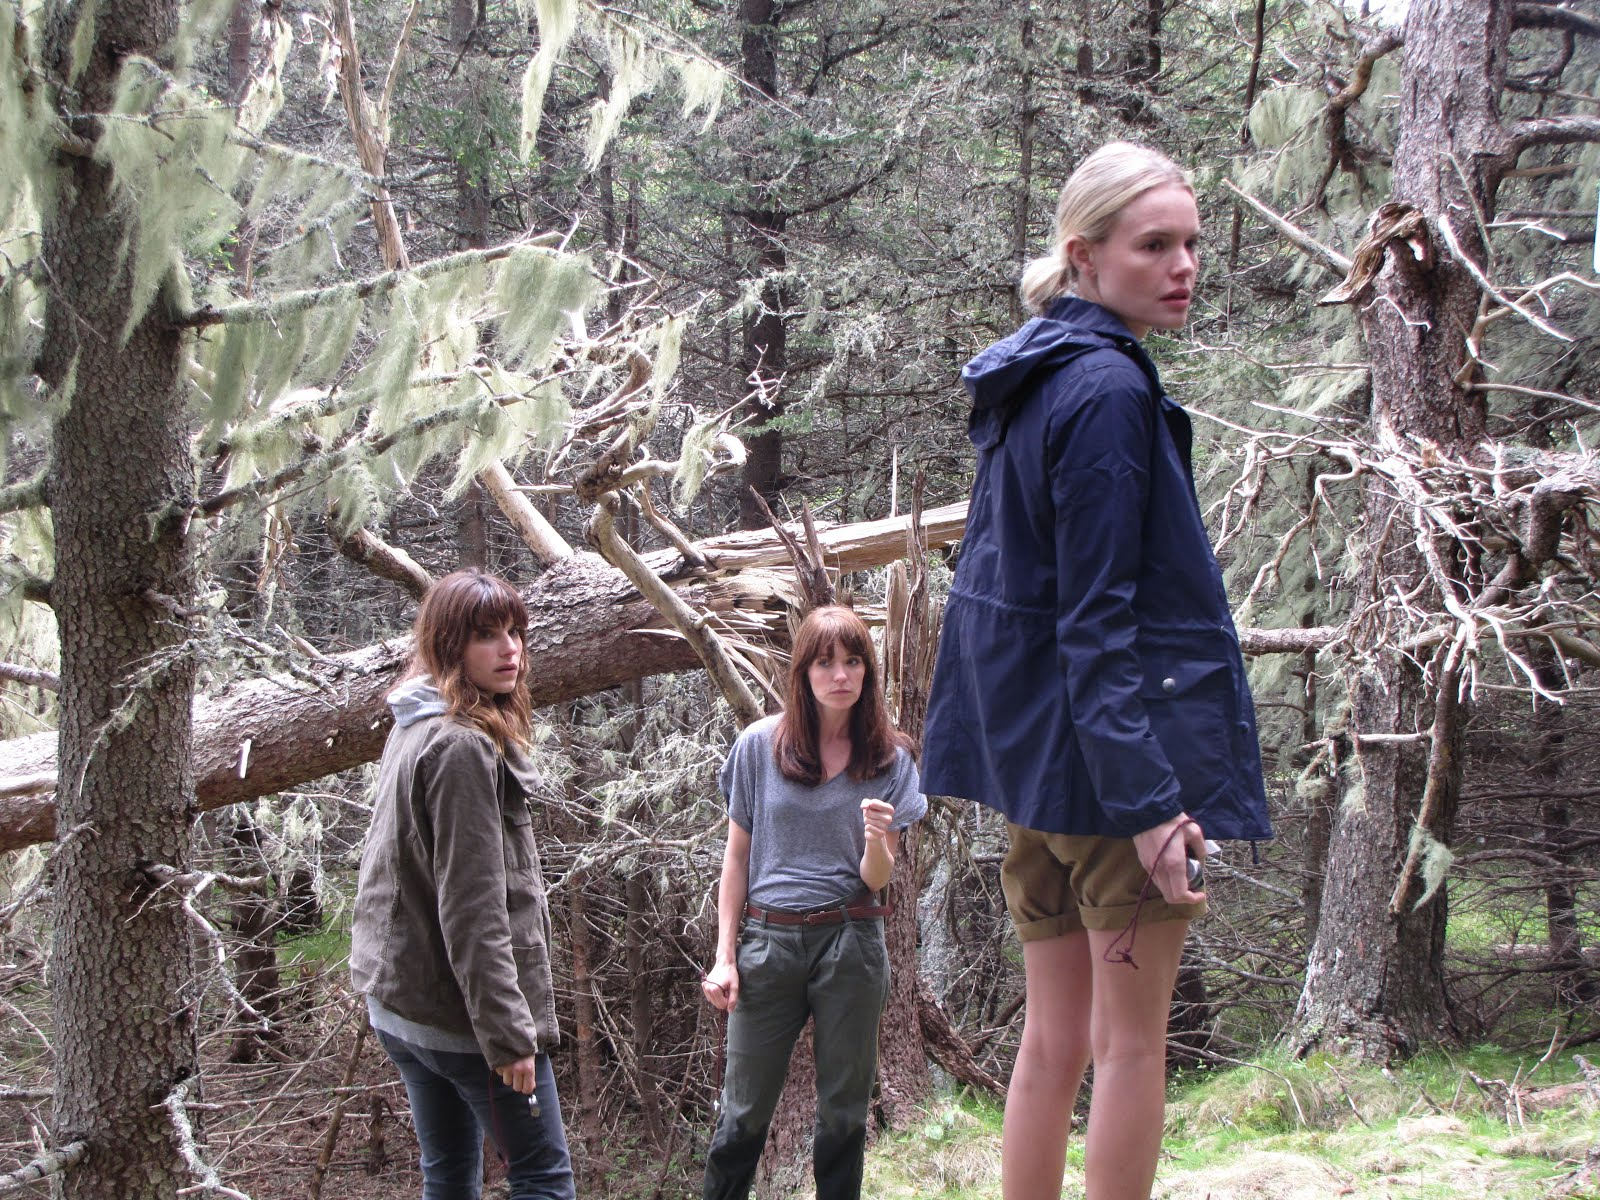 Three women hunted on an island - Lake Bell, Katie Aselton and Kate Bosworth in Black Rock (2012)